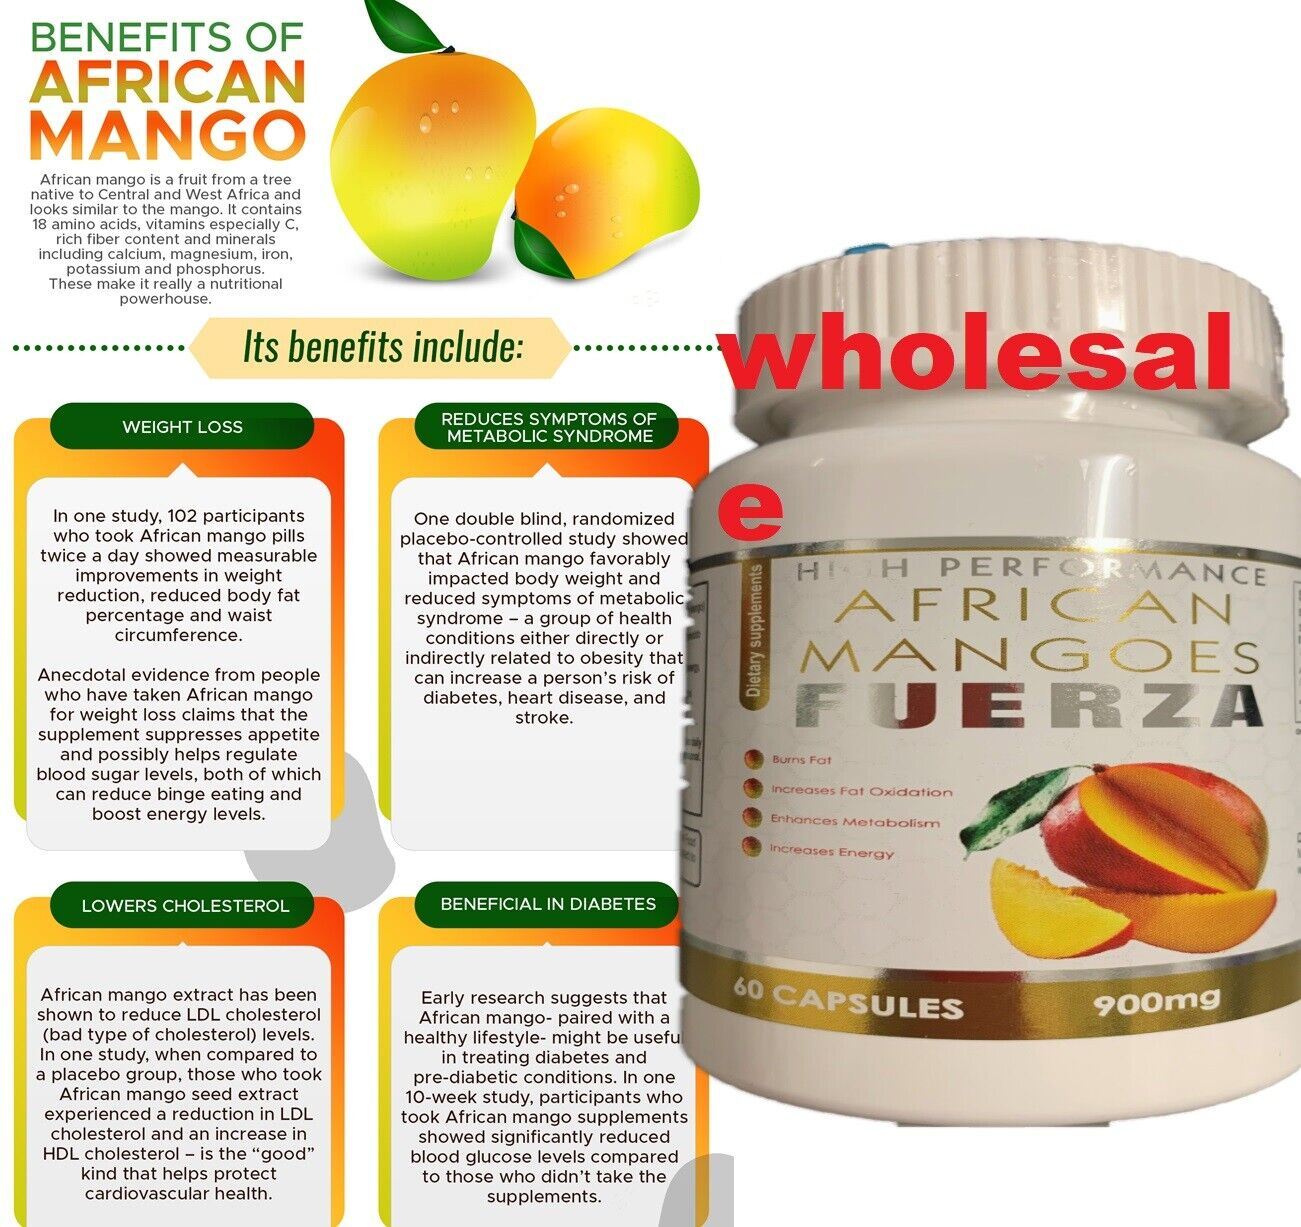 Extreme weight loss pills - PURE AFRICAN MANGO EXTRACT 900mg 1 Bottle 60 Caps 6